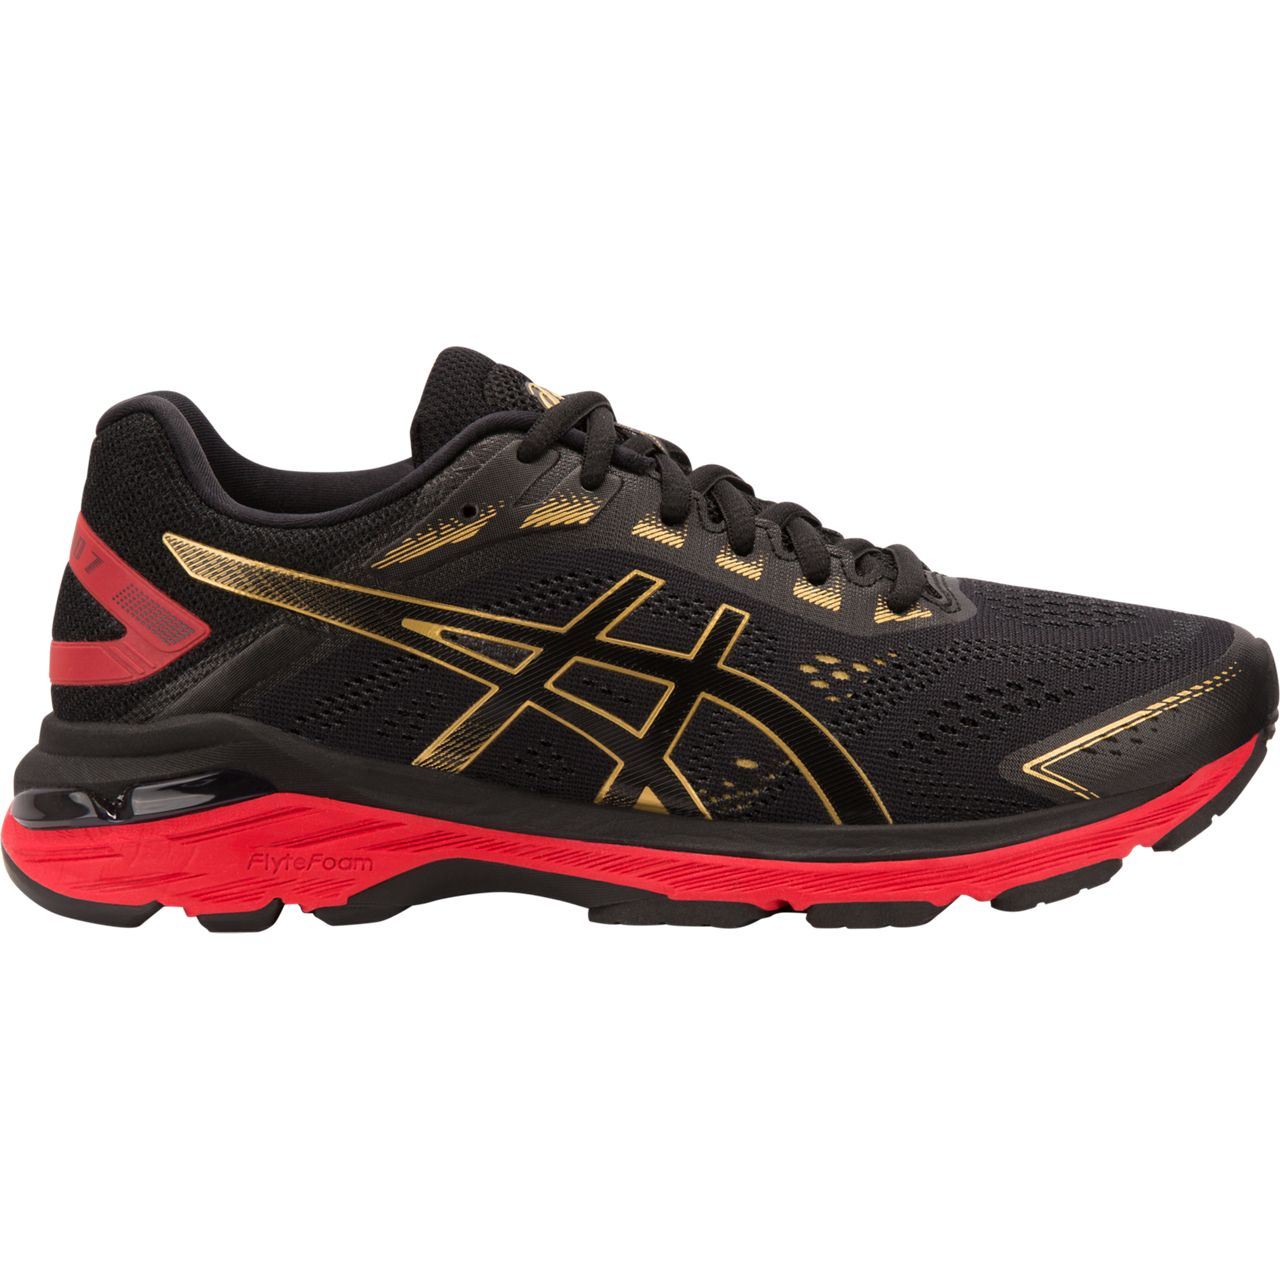 Asics Women's GT-2000 7 Shoes   Shoes and overlays